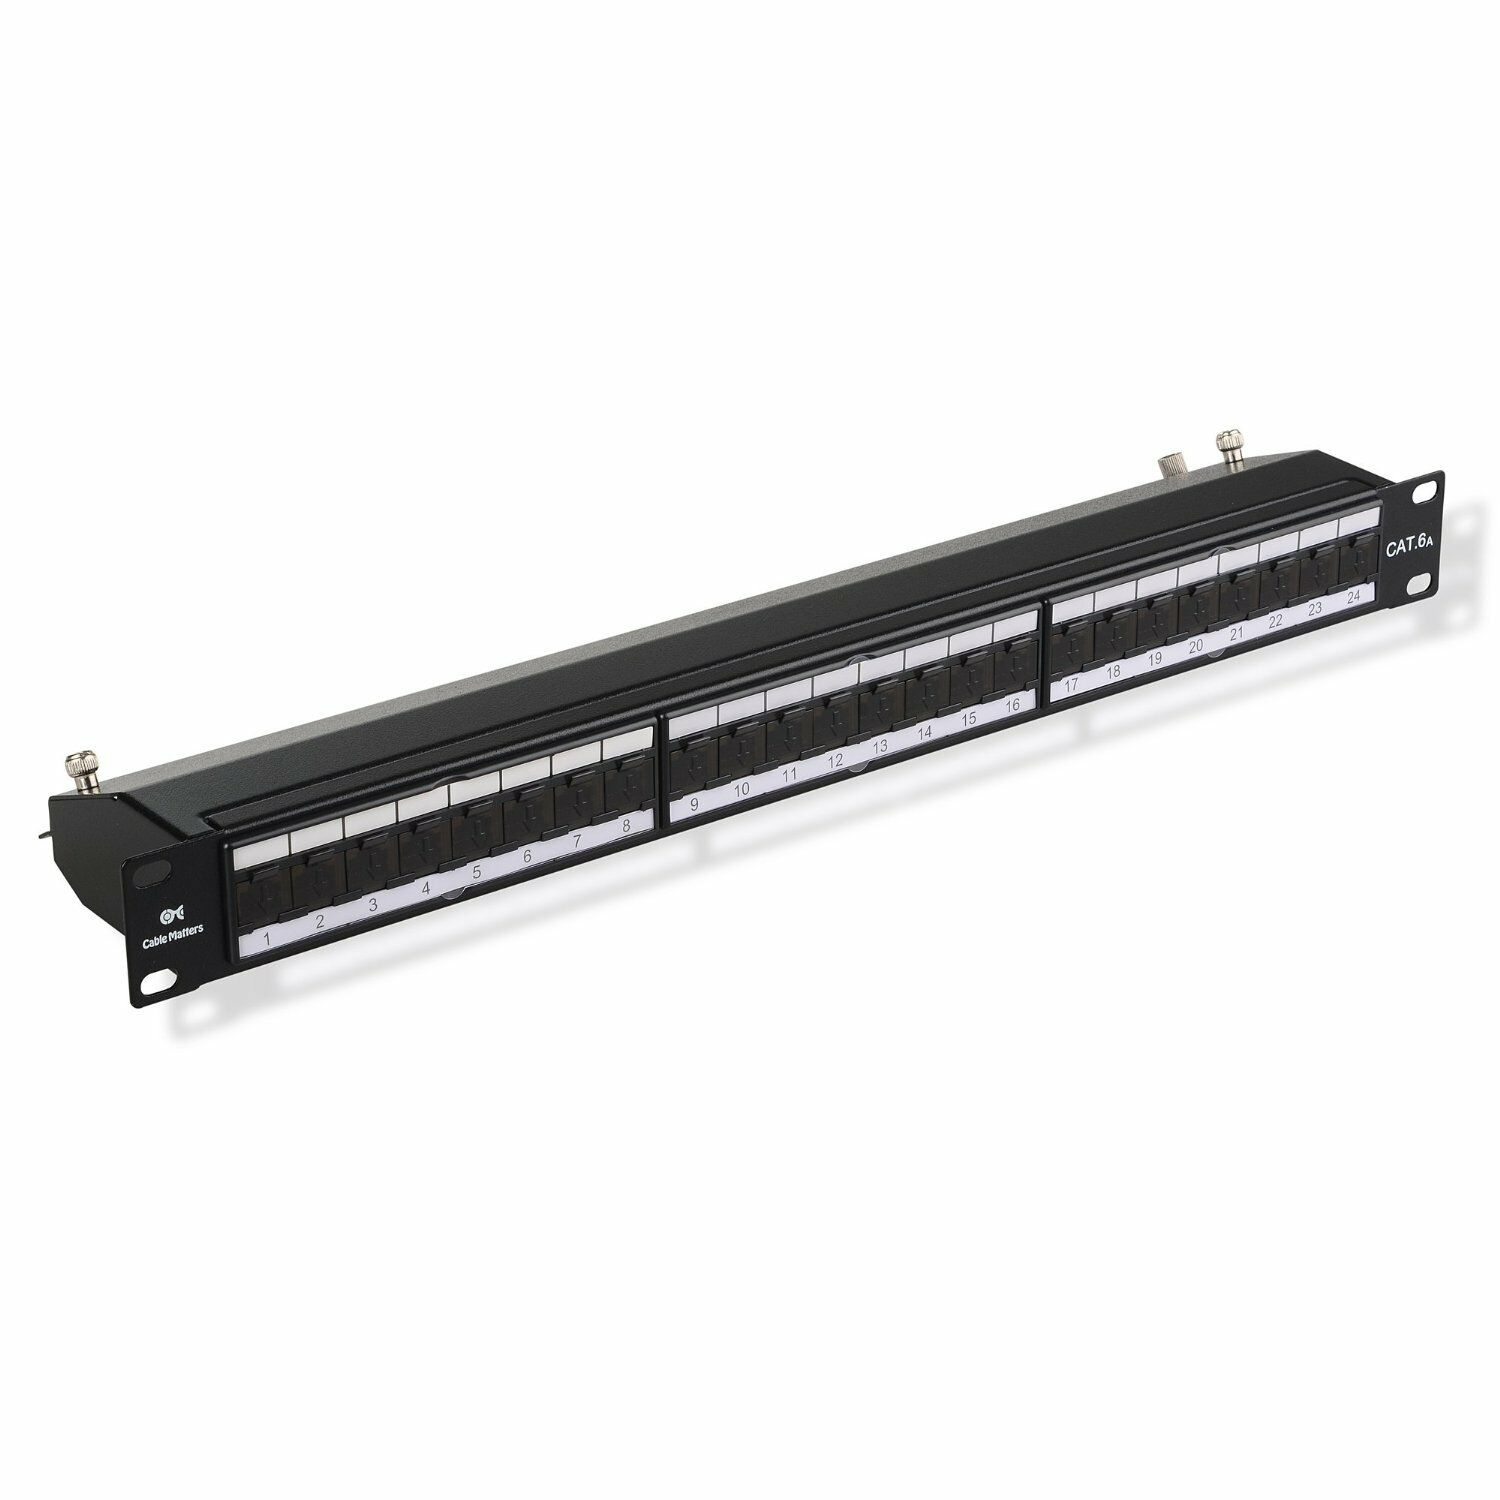 Cable Matters Cat6a Shielded 110 Type Patch Panel 24 Port 8999 Rj45 Wiring 1 Of See More